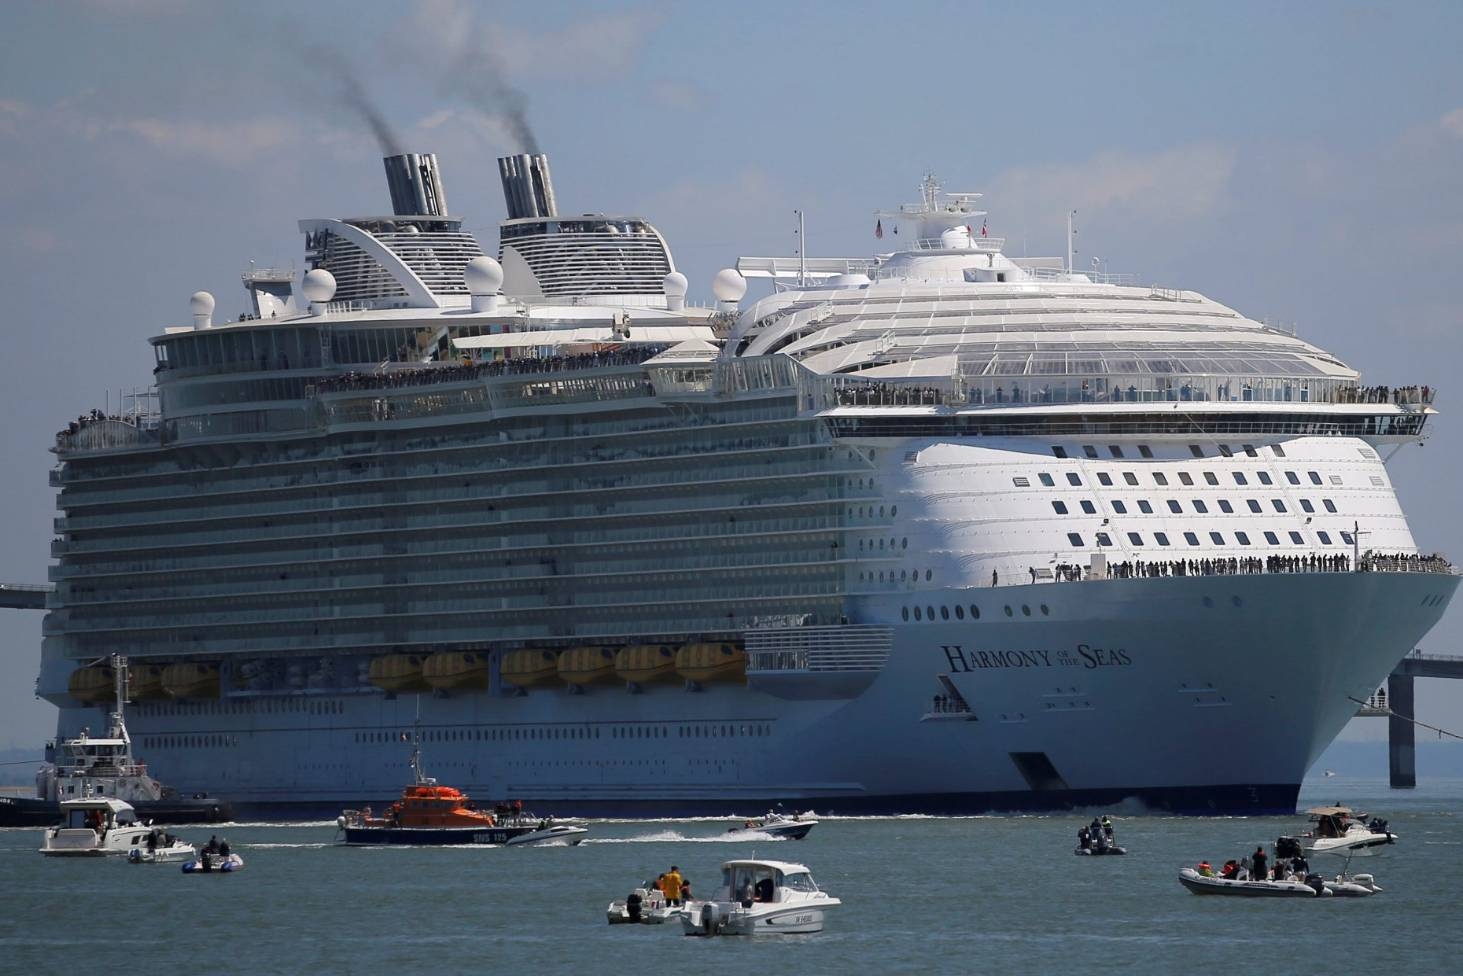 Harmony Of The Seas Inside The Largest Cruise Ship Ever Built